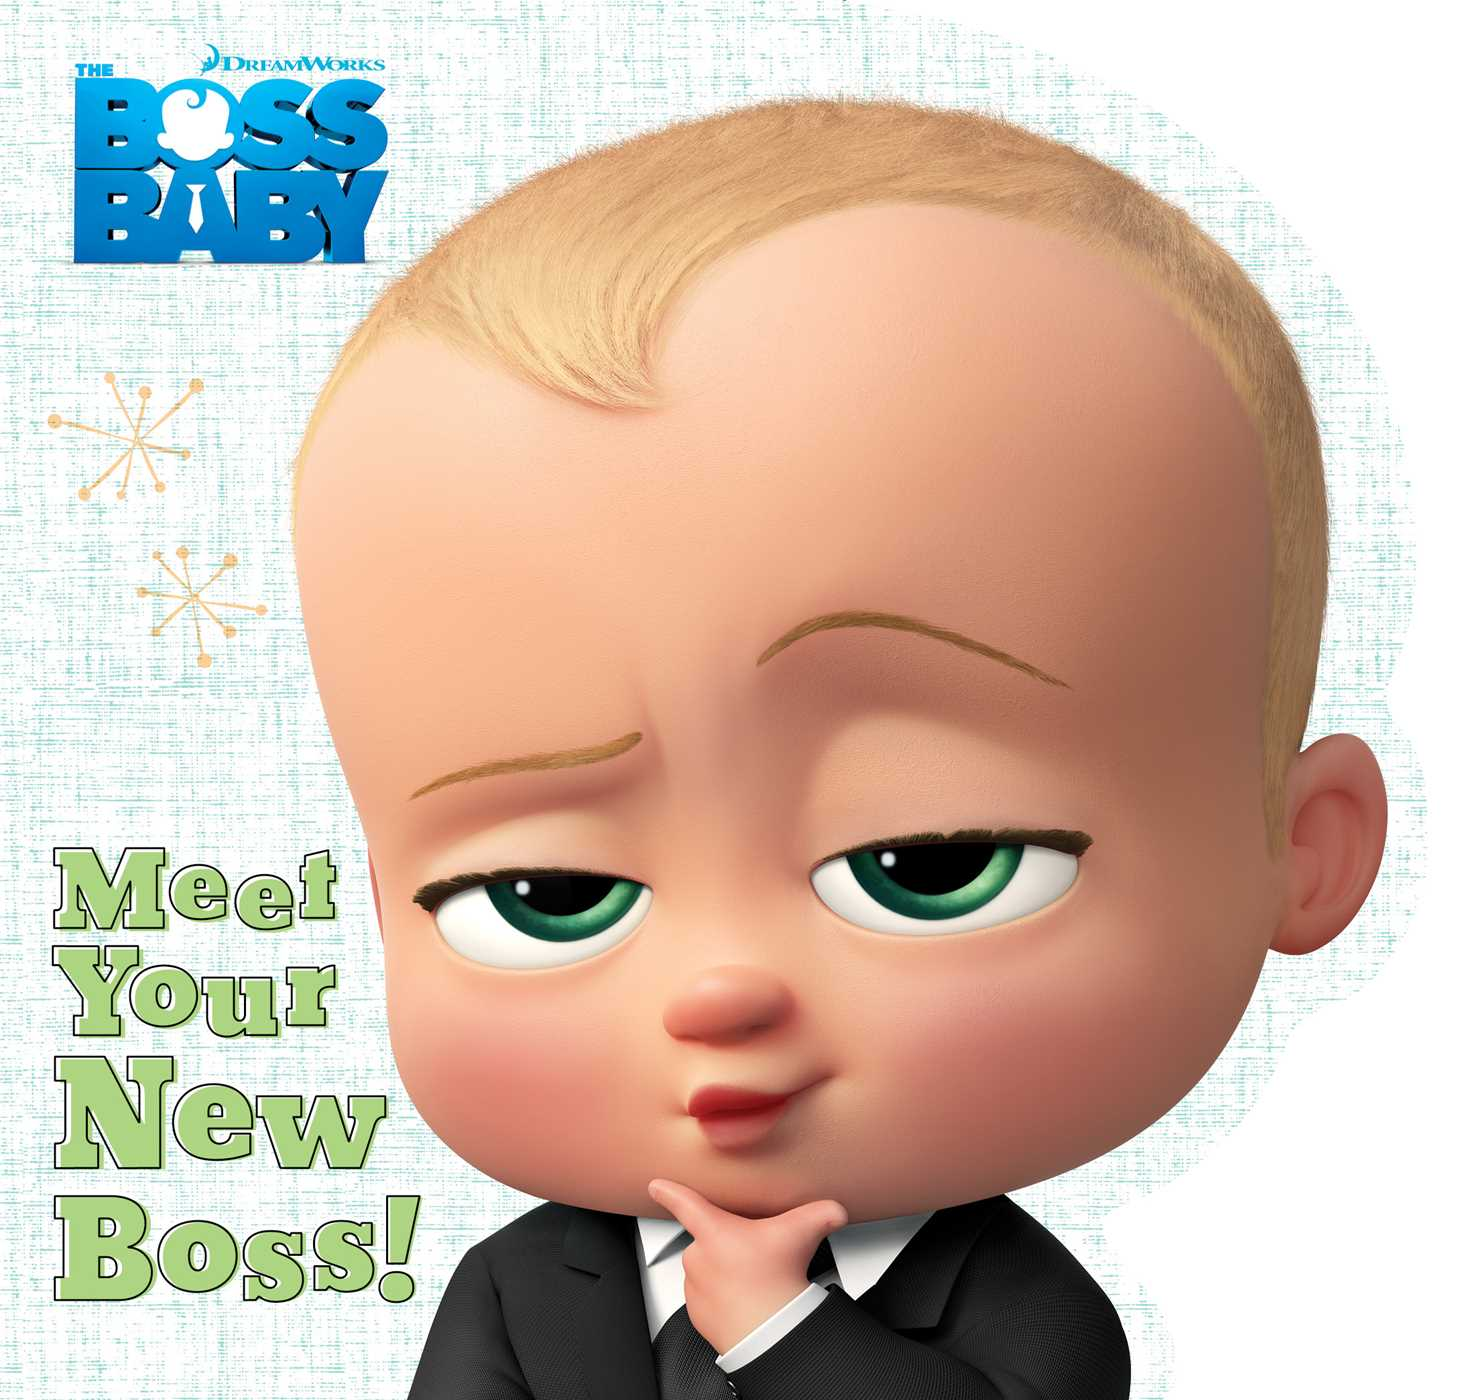 Meet your new boss 9781481457927 hr